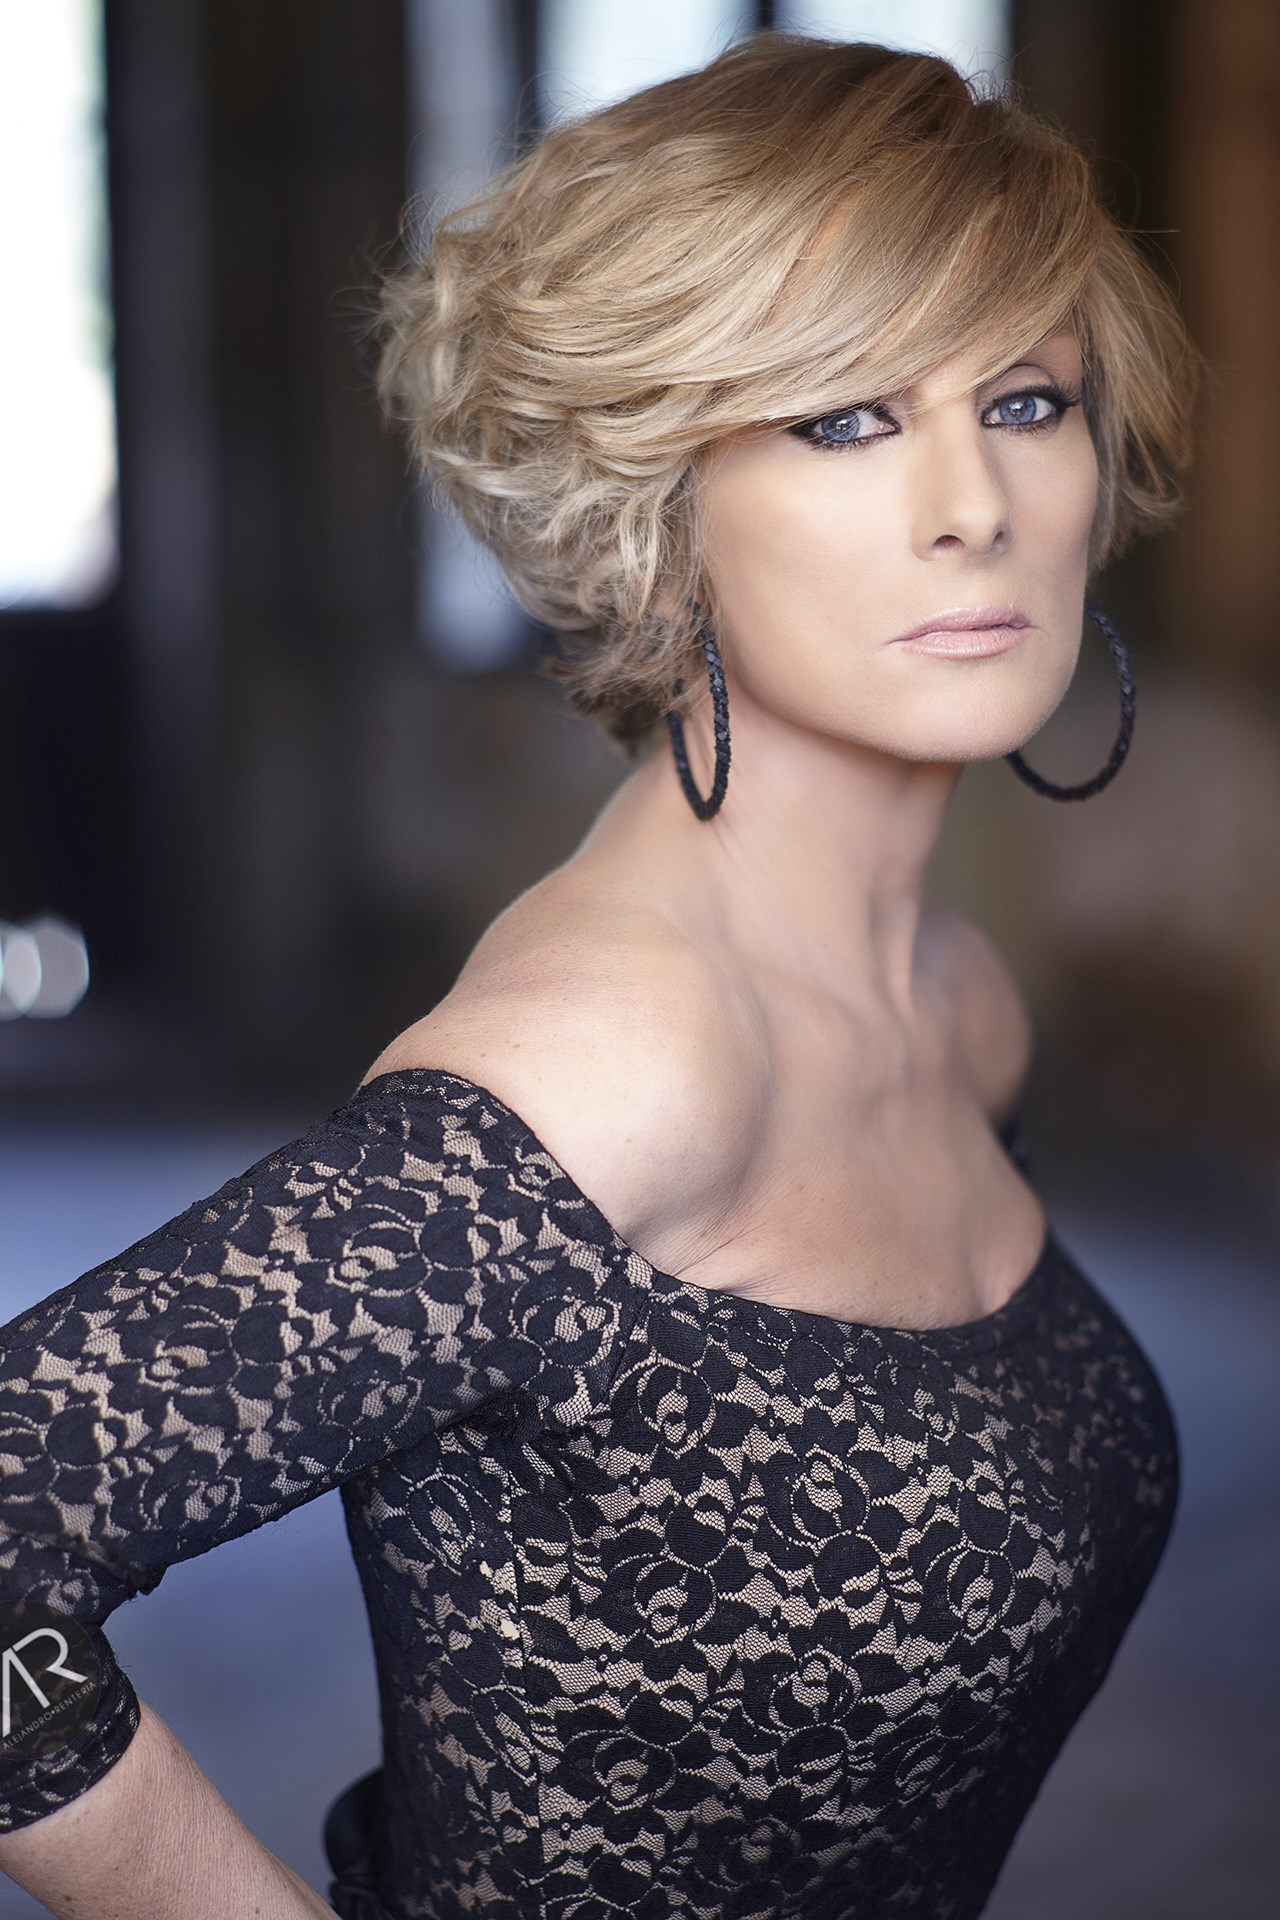 Christian Bach | Known people - famous people news and ... Christian Bach